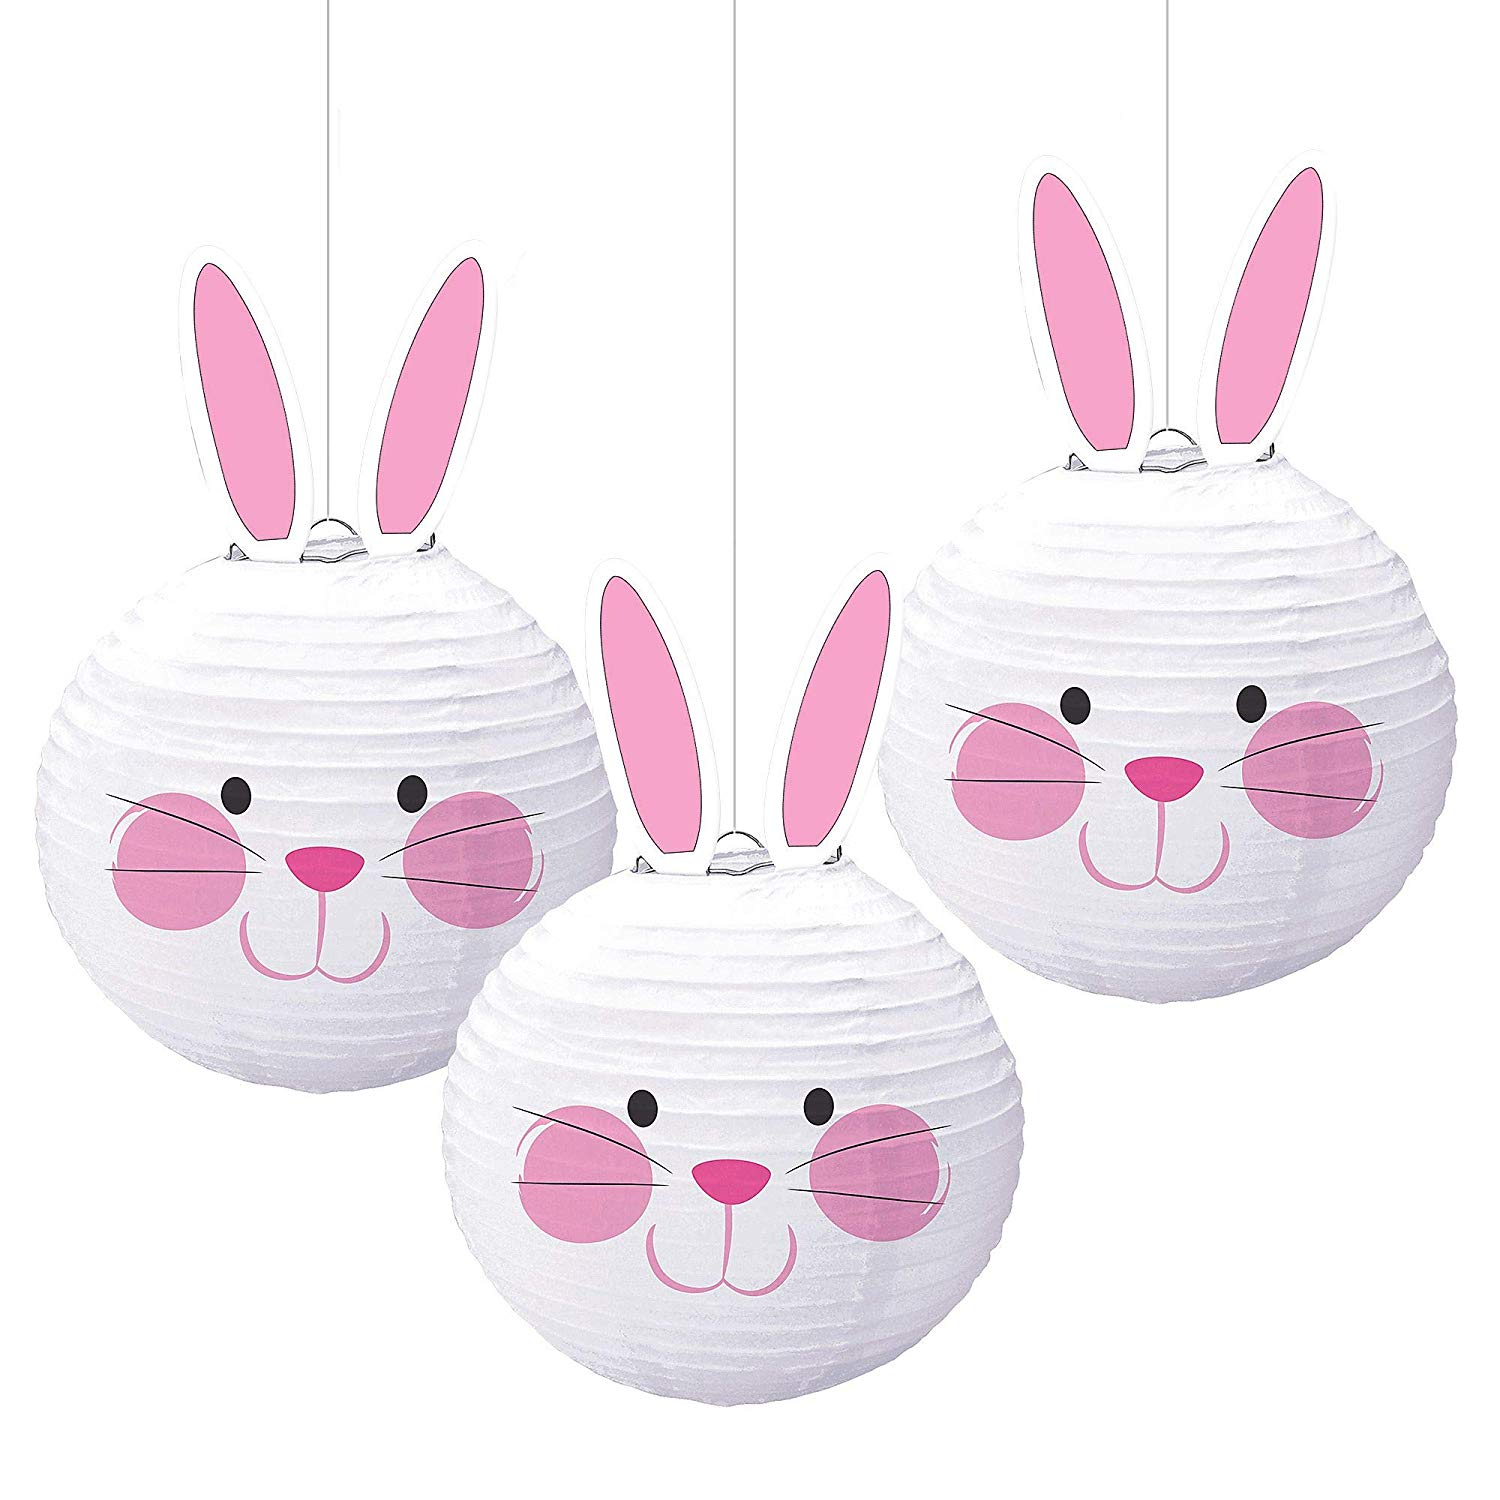 Colored chinese new year paper lanterns lamp hanging decoration for holiday